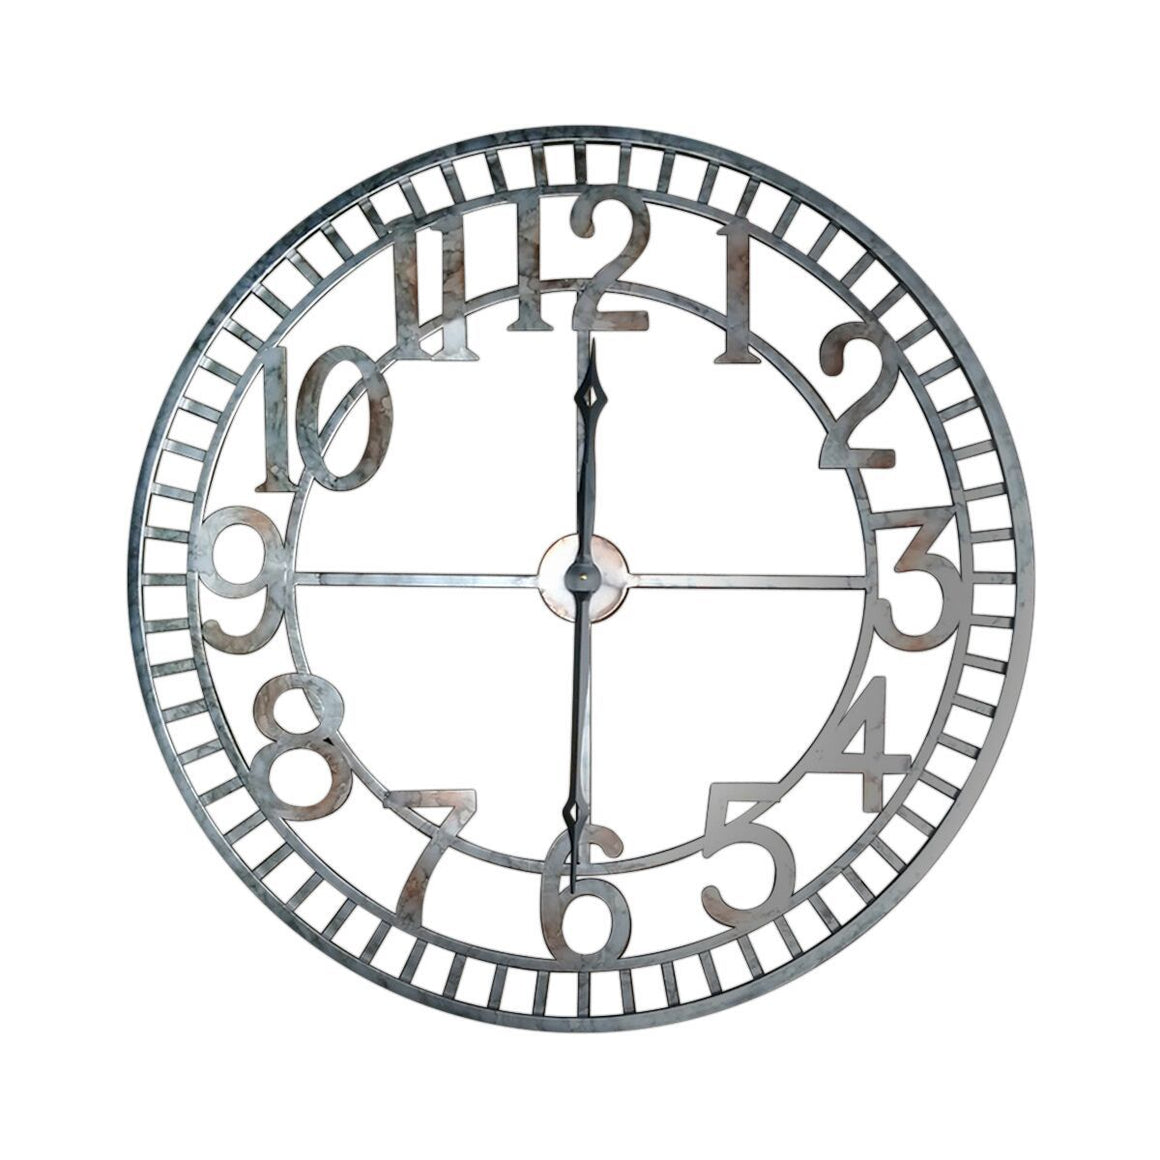 "Extra Large Farmhouse Industrial Metal Wall Clock - 36"" Diameter-Rustic Deco Incorporated"